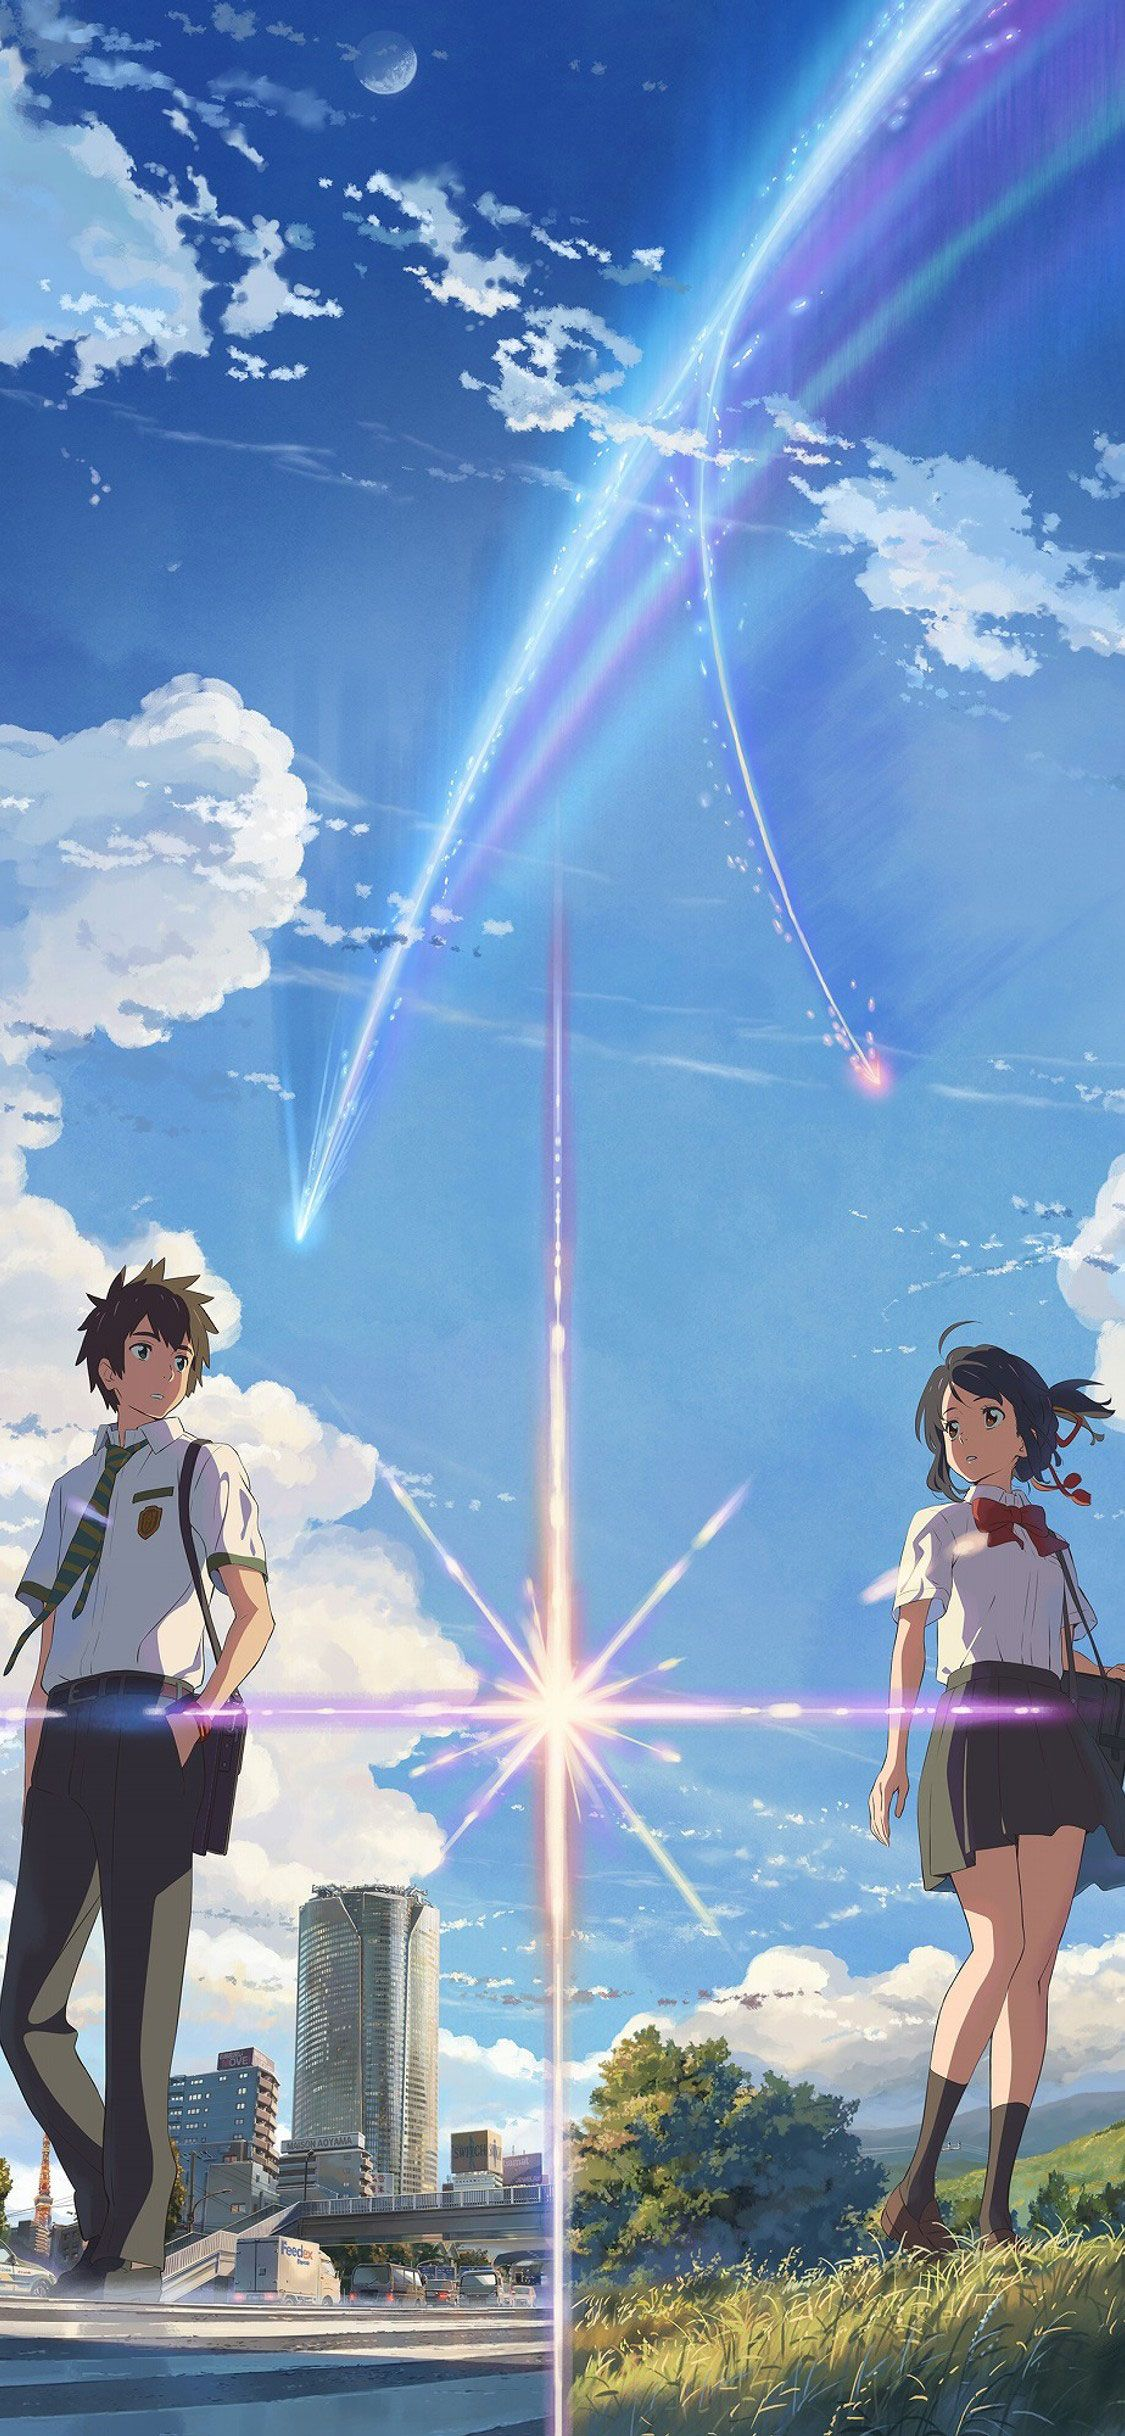 Your Name Wallpaper for iPhone | Anime Background | Anime Wallpaper Aesthetic | iGeeksBlog